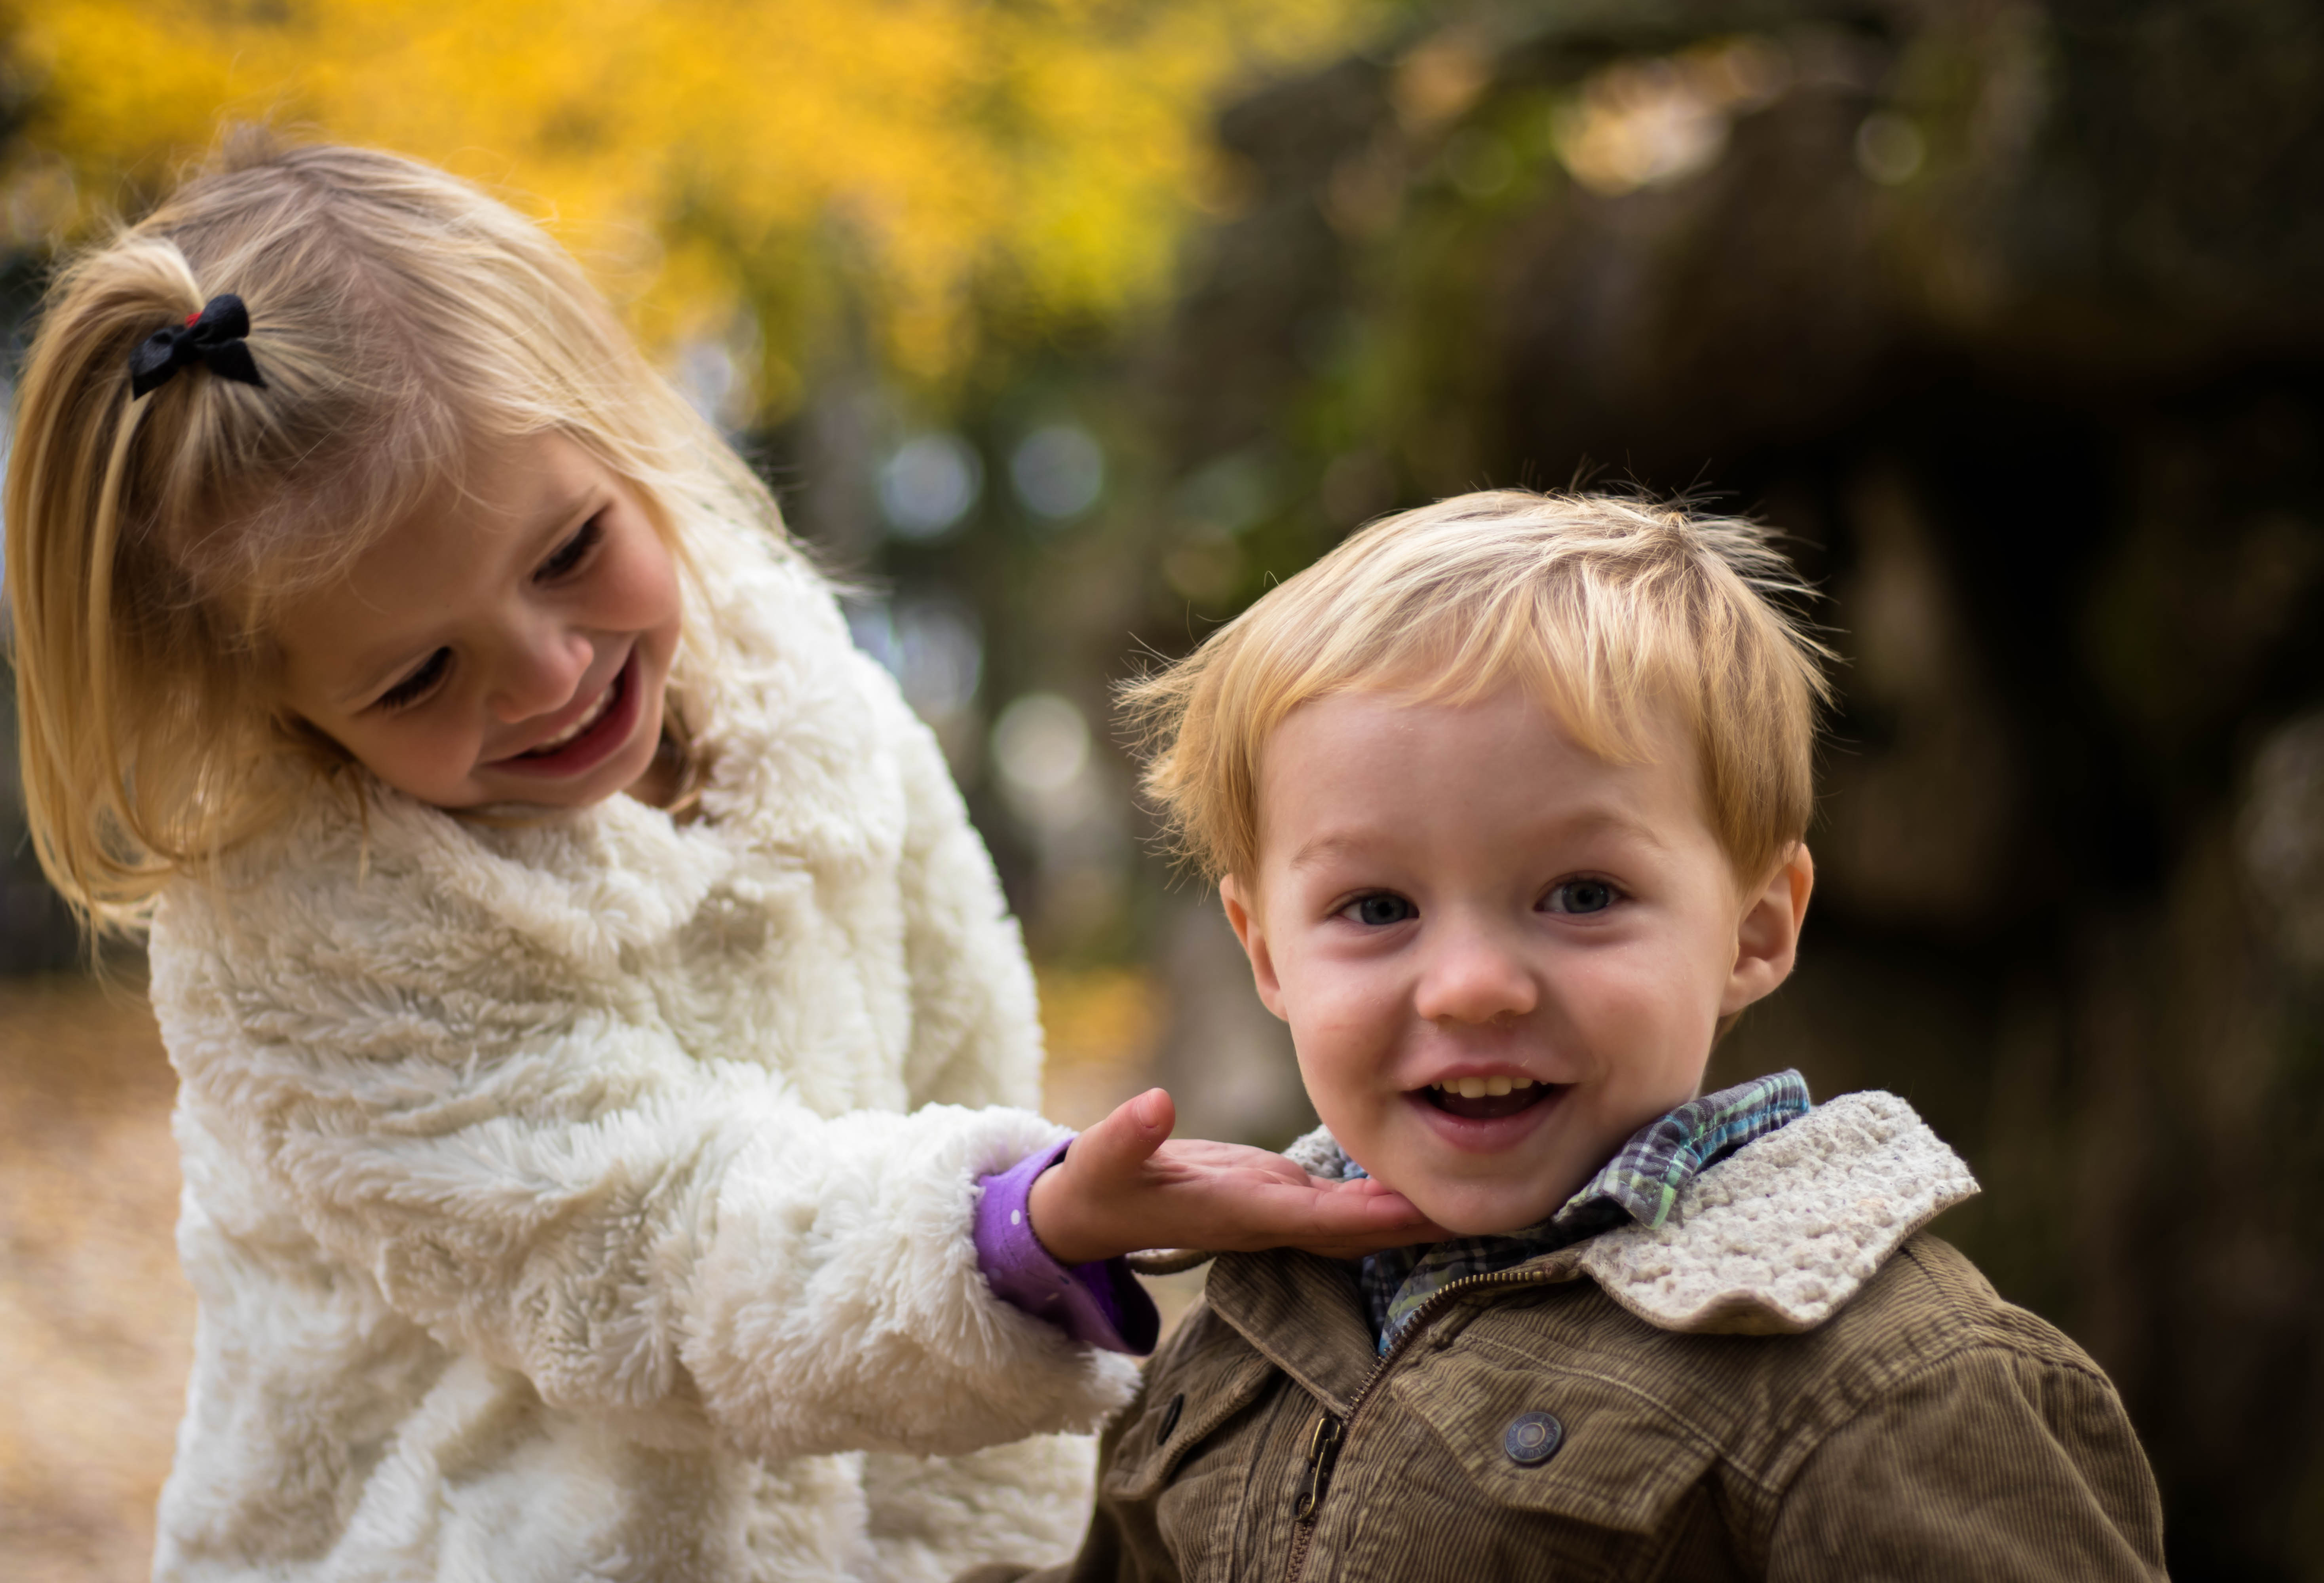 Canva - Girl Holding the Chin of Boy Outdoor